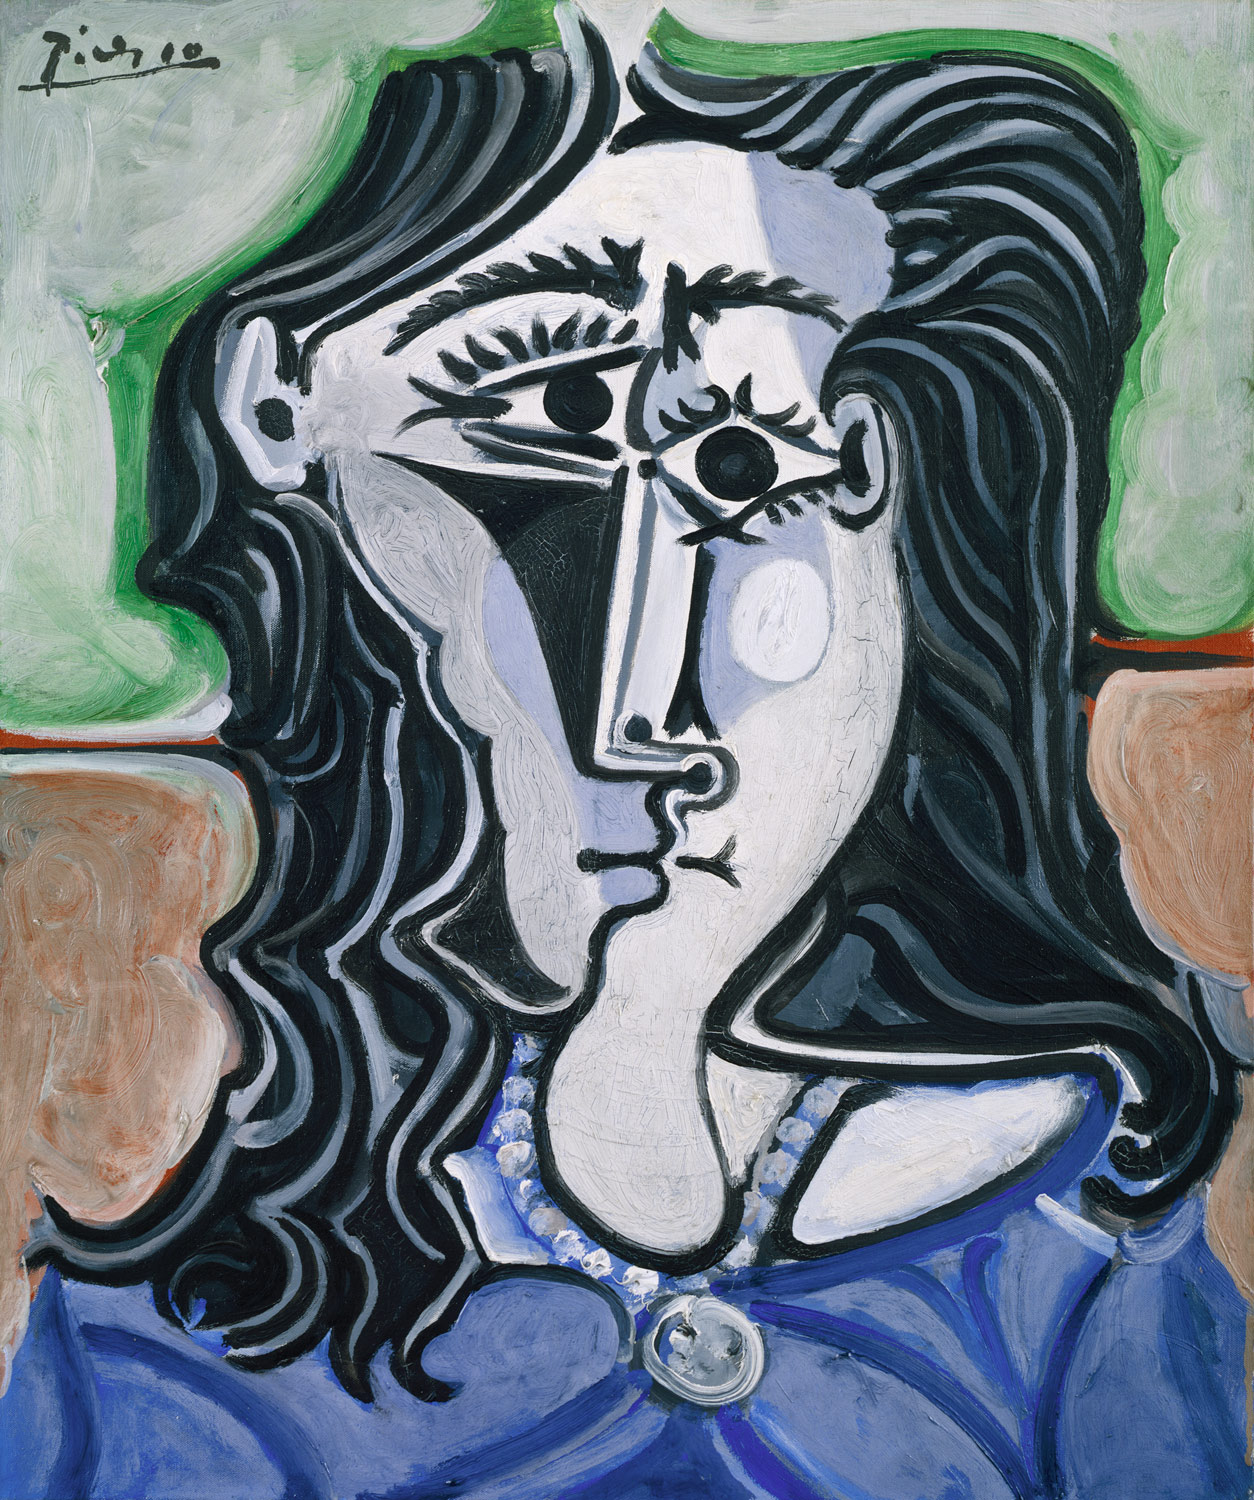 """Head of a Woman"" 1960 by Pablo Picasso, painting in the Met Museum collection"